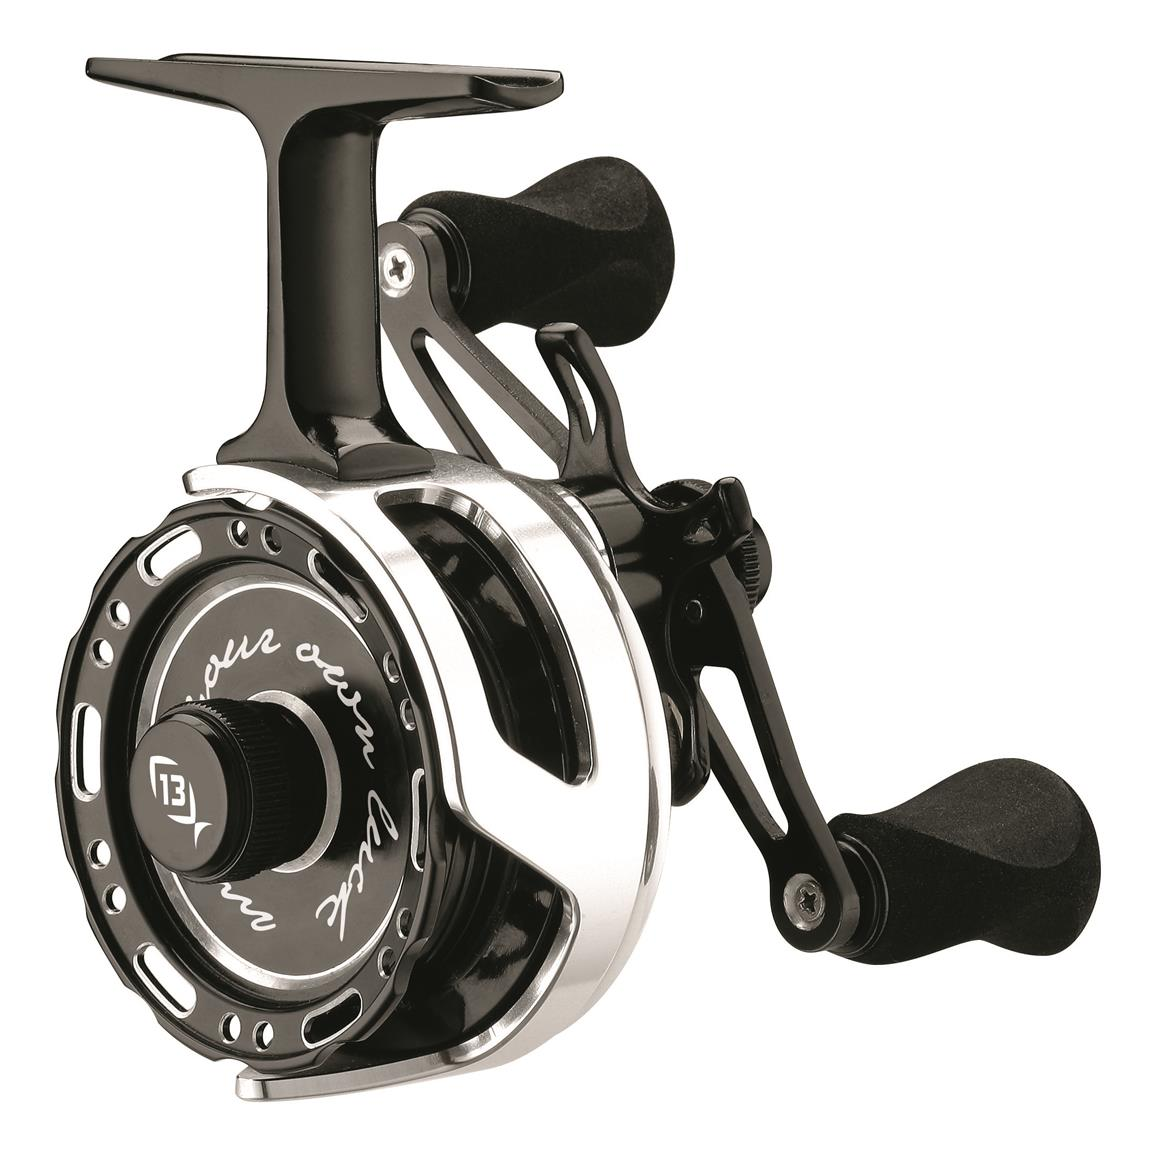 13 Fishing Black Betty Inline Ice Fishing Reel, Right Handed